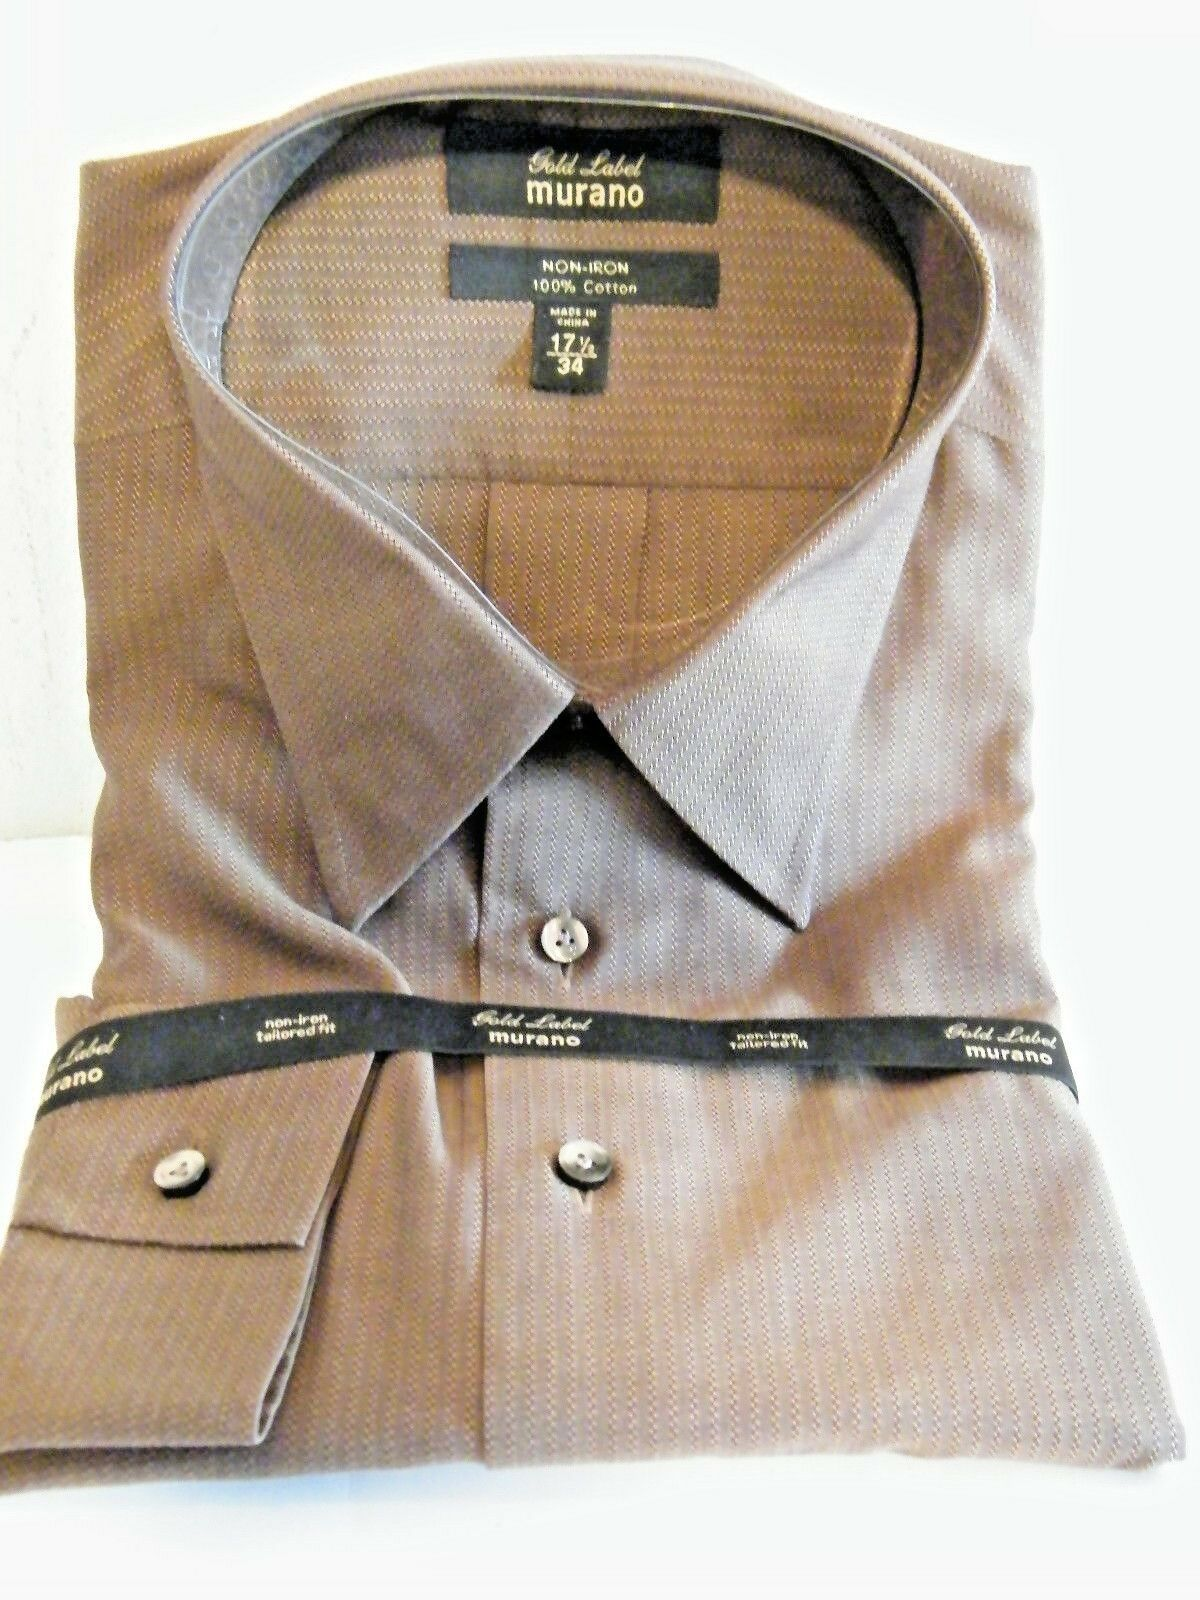 4ef676ae Murano Gold Label Mens Dress Shirt Brown Size XL 17.5 34 L88 - $18.76